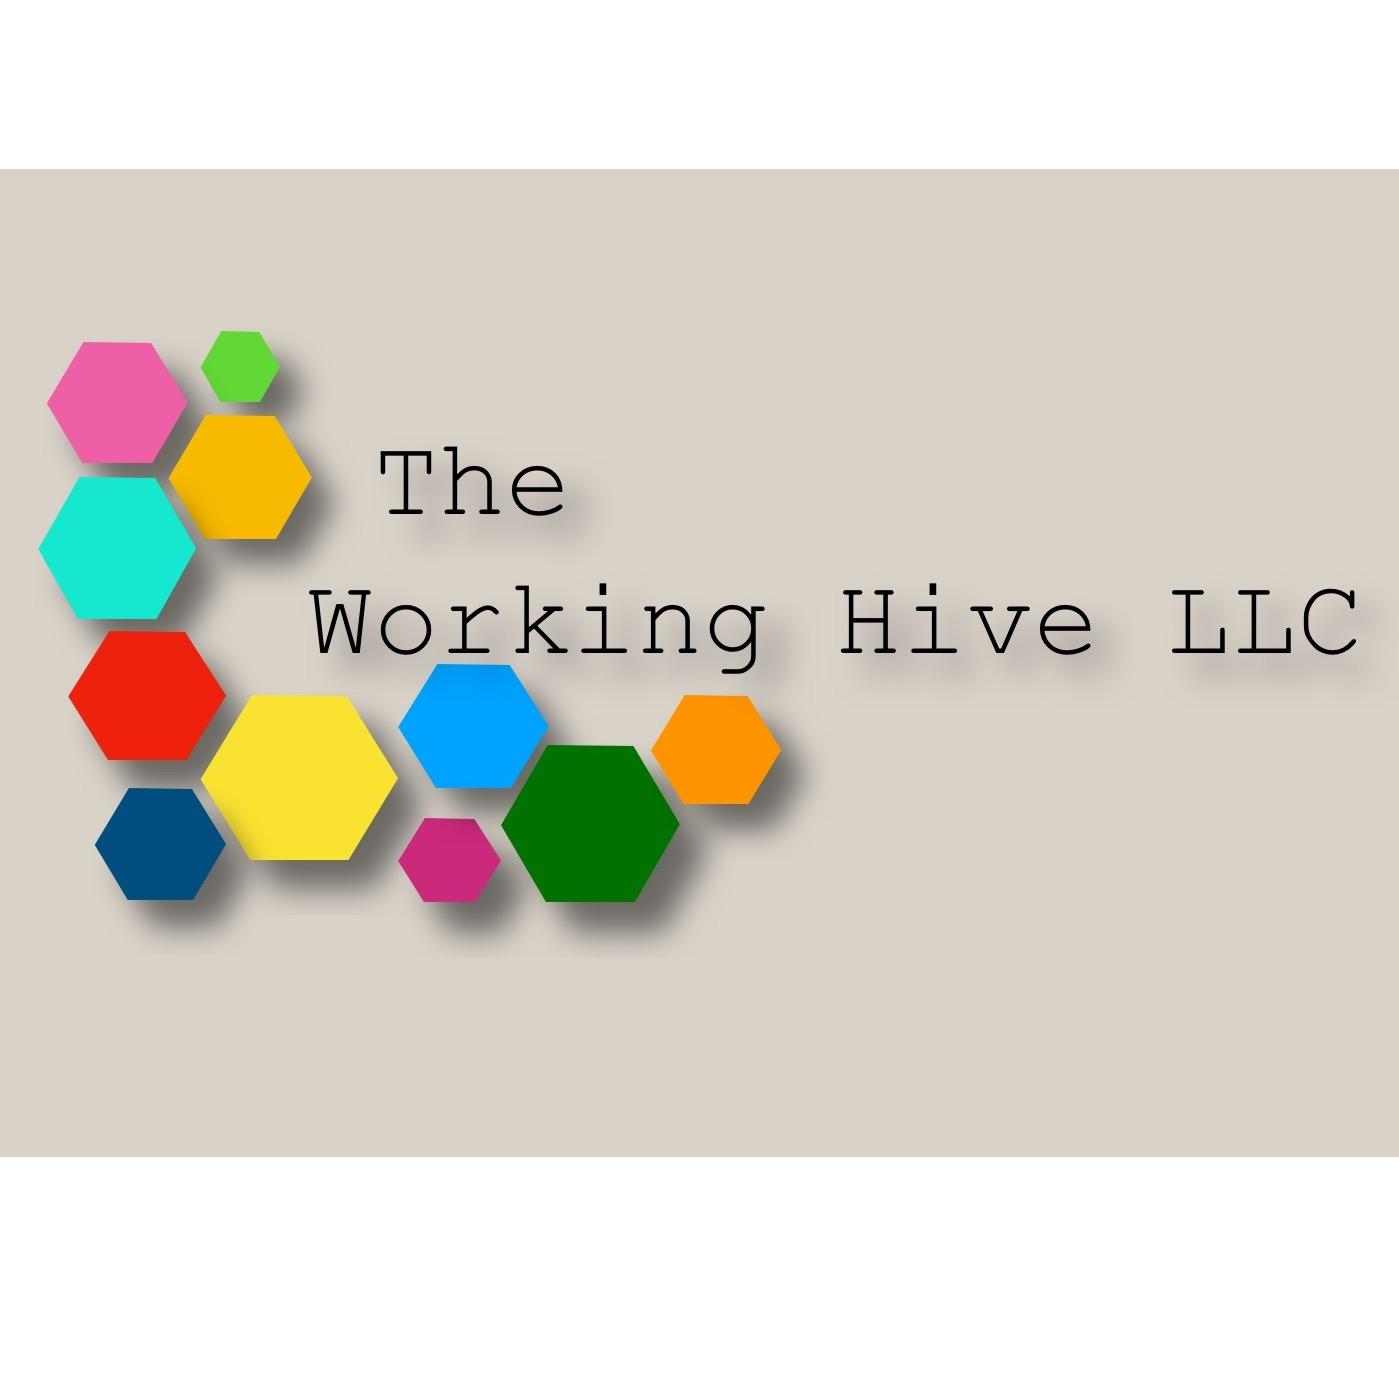 The Working Hive LLC